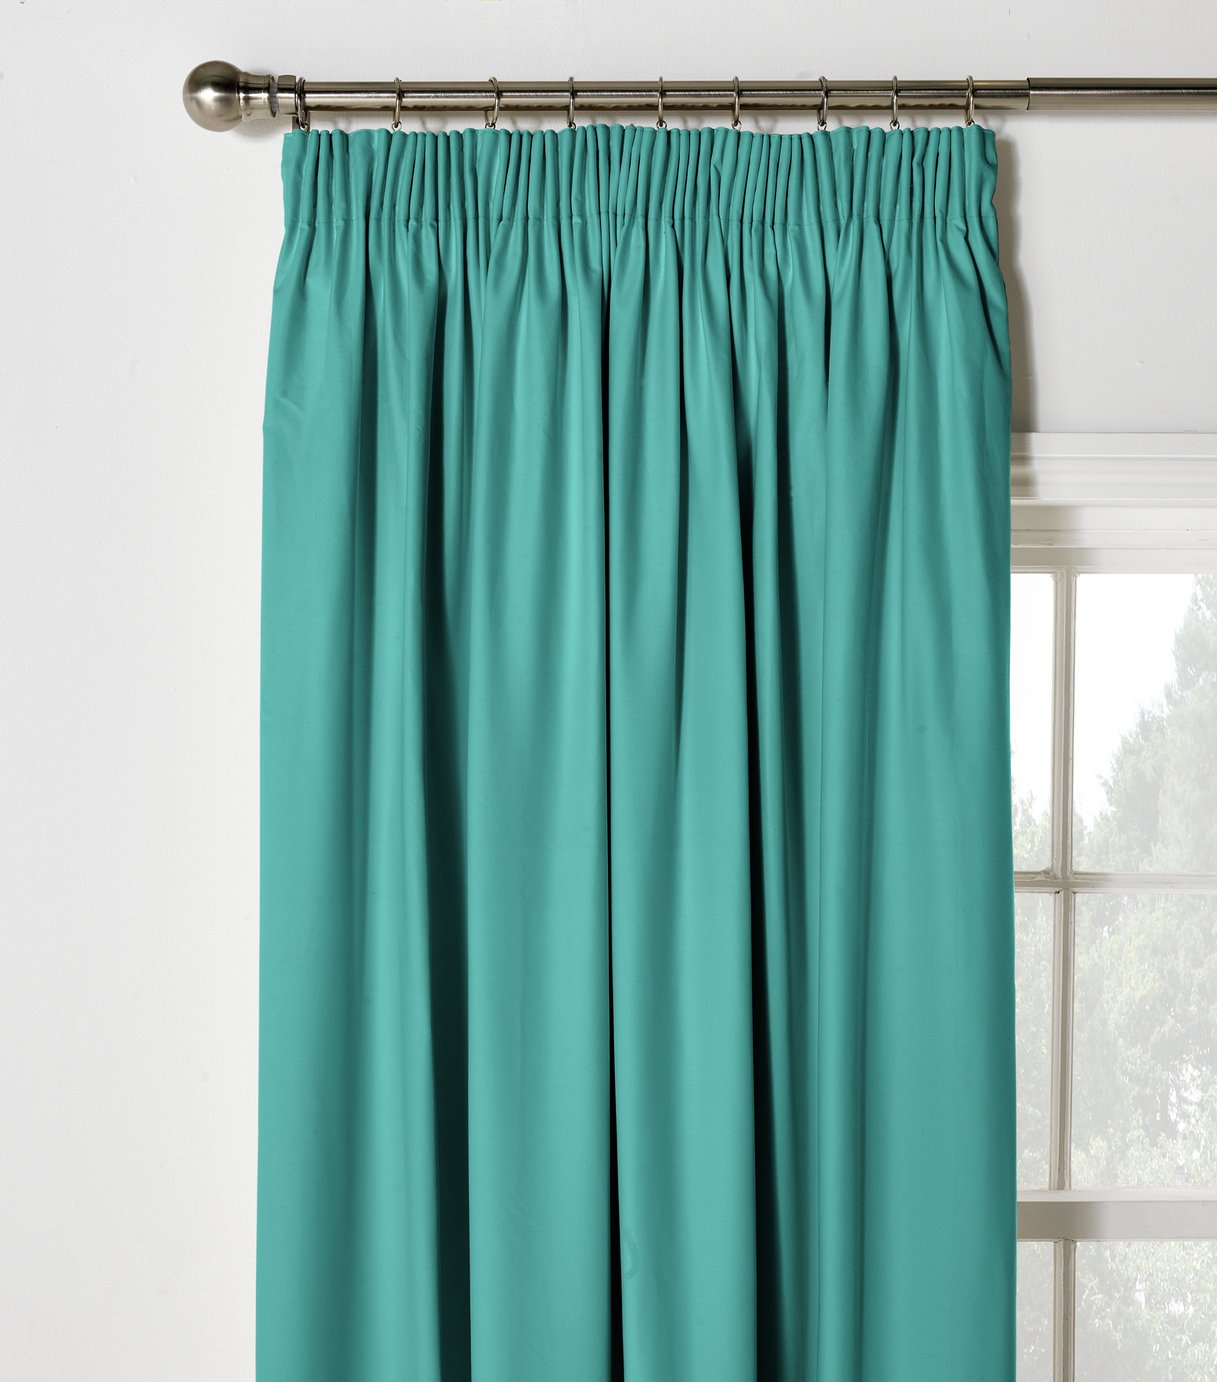 Image of ColourMatch Blackout Pencil Pleat Curtains -117x183cm- Teal